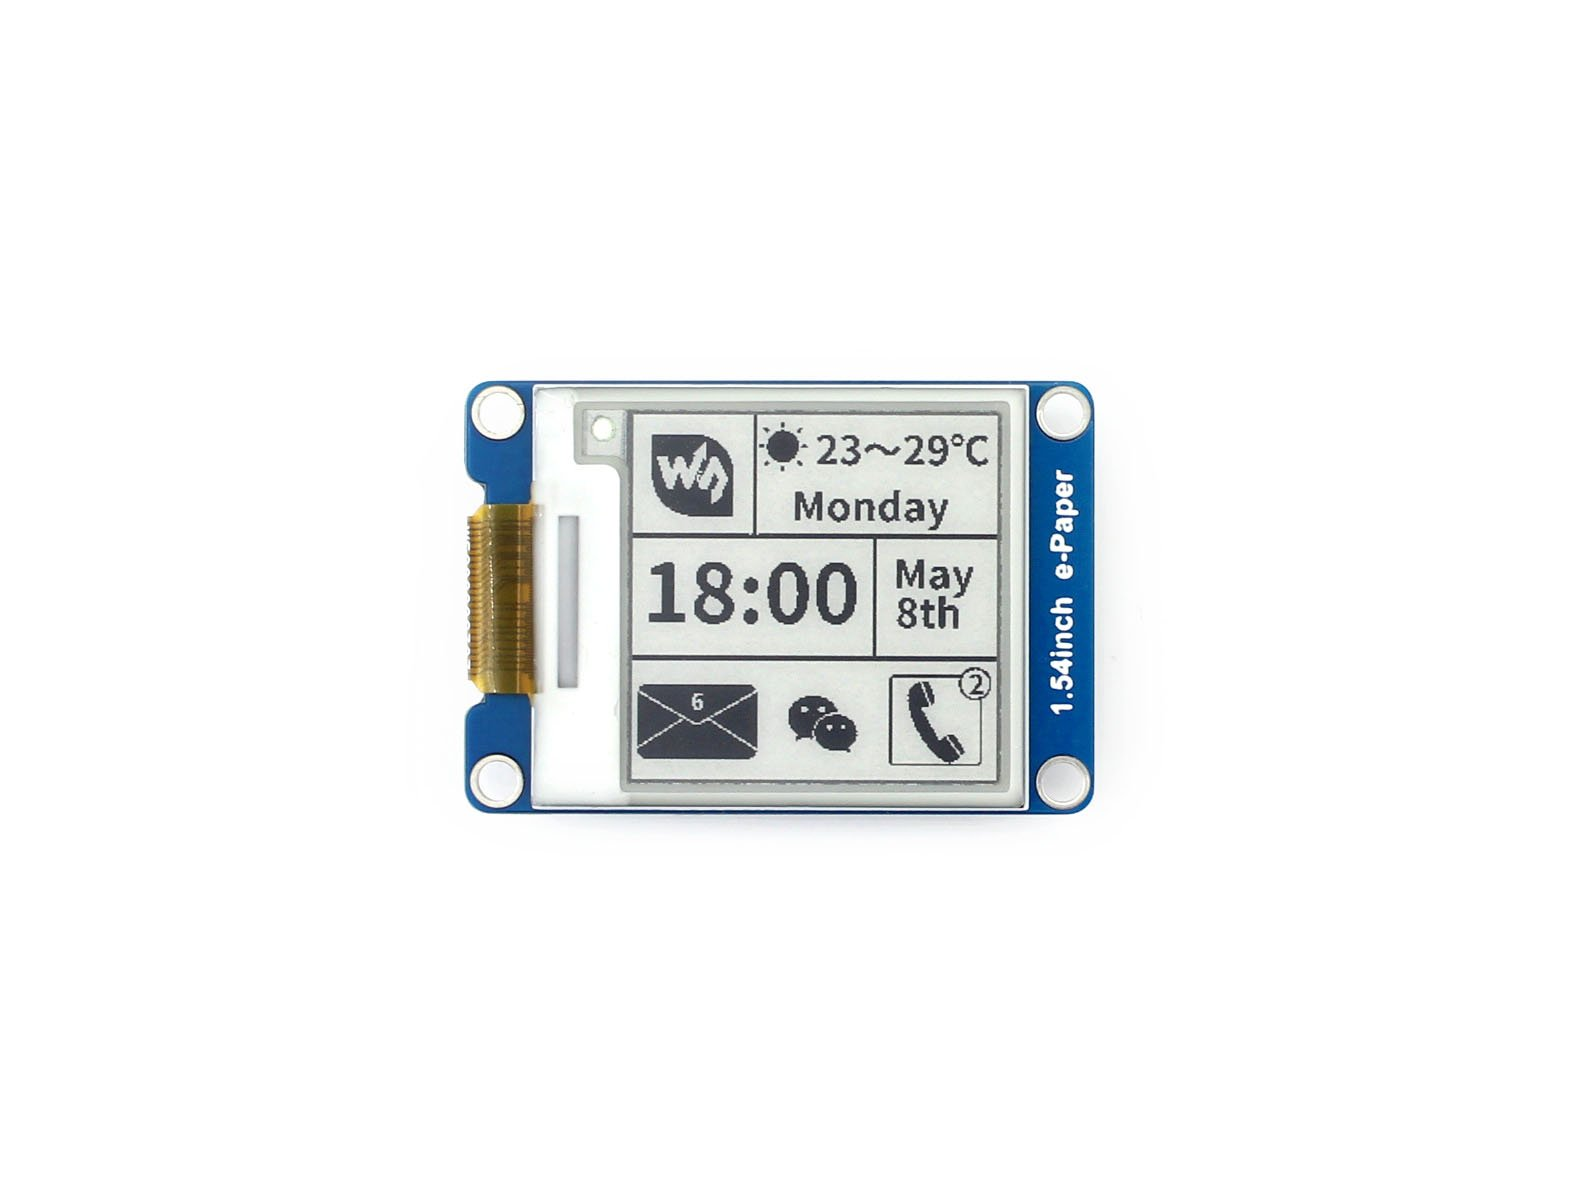 200x200, 1.54inch E-Ink display module,1.54inch e-Paper,SPI interface,Supports partial refresh by waveshare (Image #1)